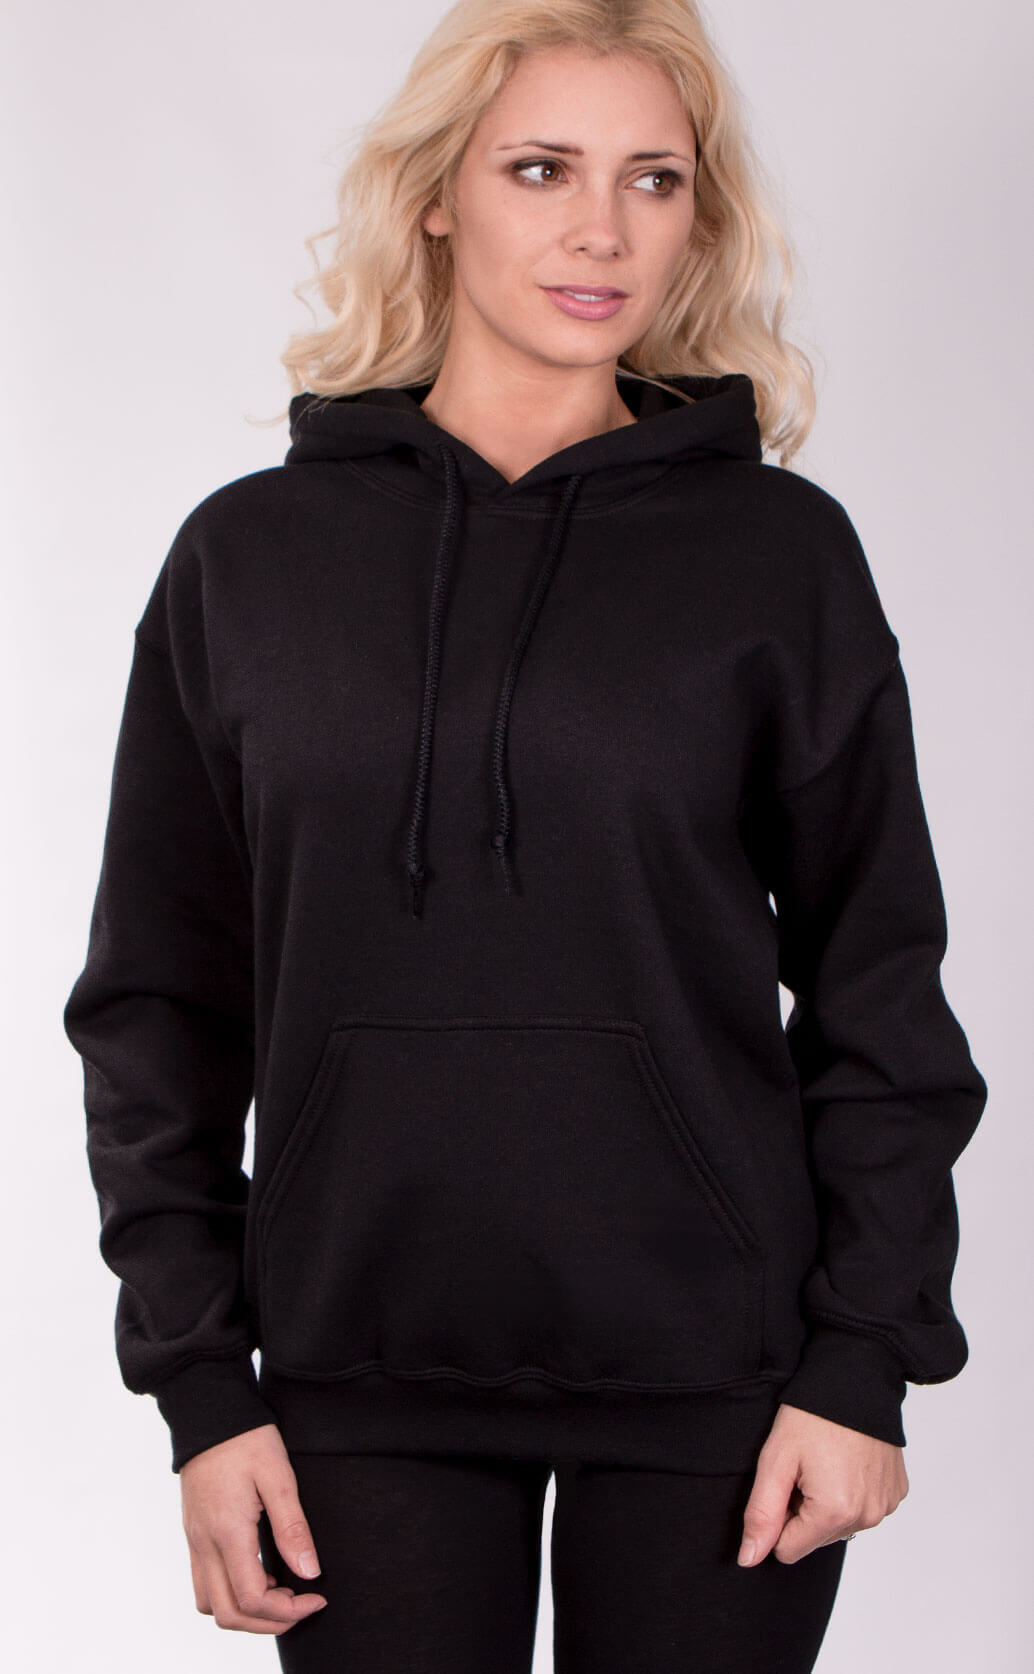 Size guide image for Unisex Hoodie ladies shirt type. Shot from the front. Model is dressed in black